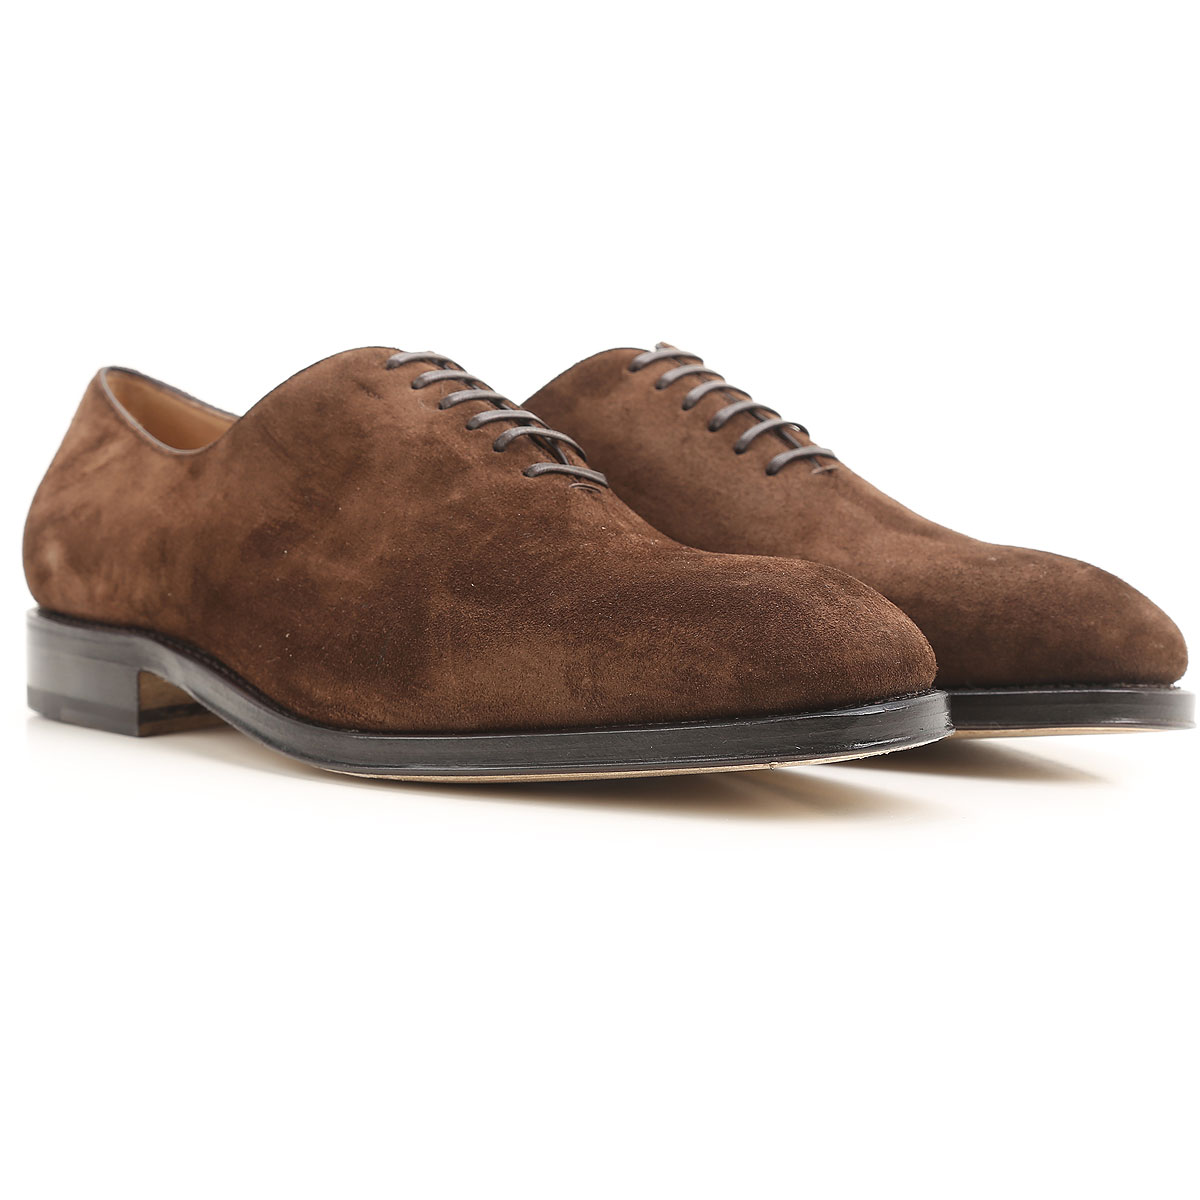 Salvatore Ferragamo Lace Up Shoes for Men Oxfords Derbies and Brogues On Sale in Outlet SE - GOOFASH